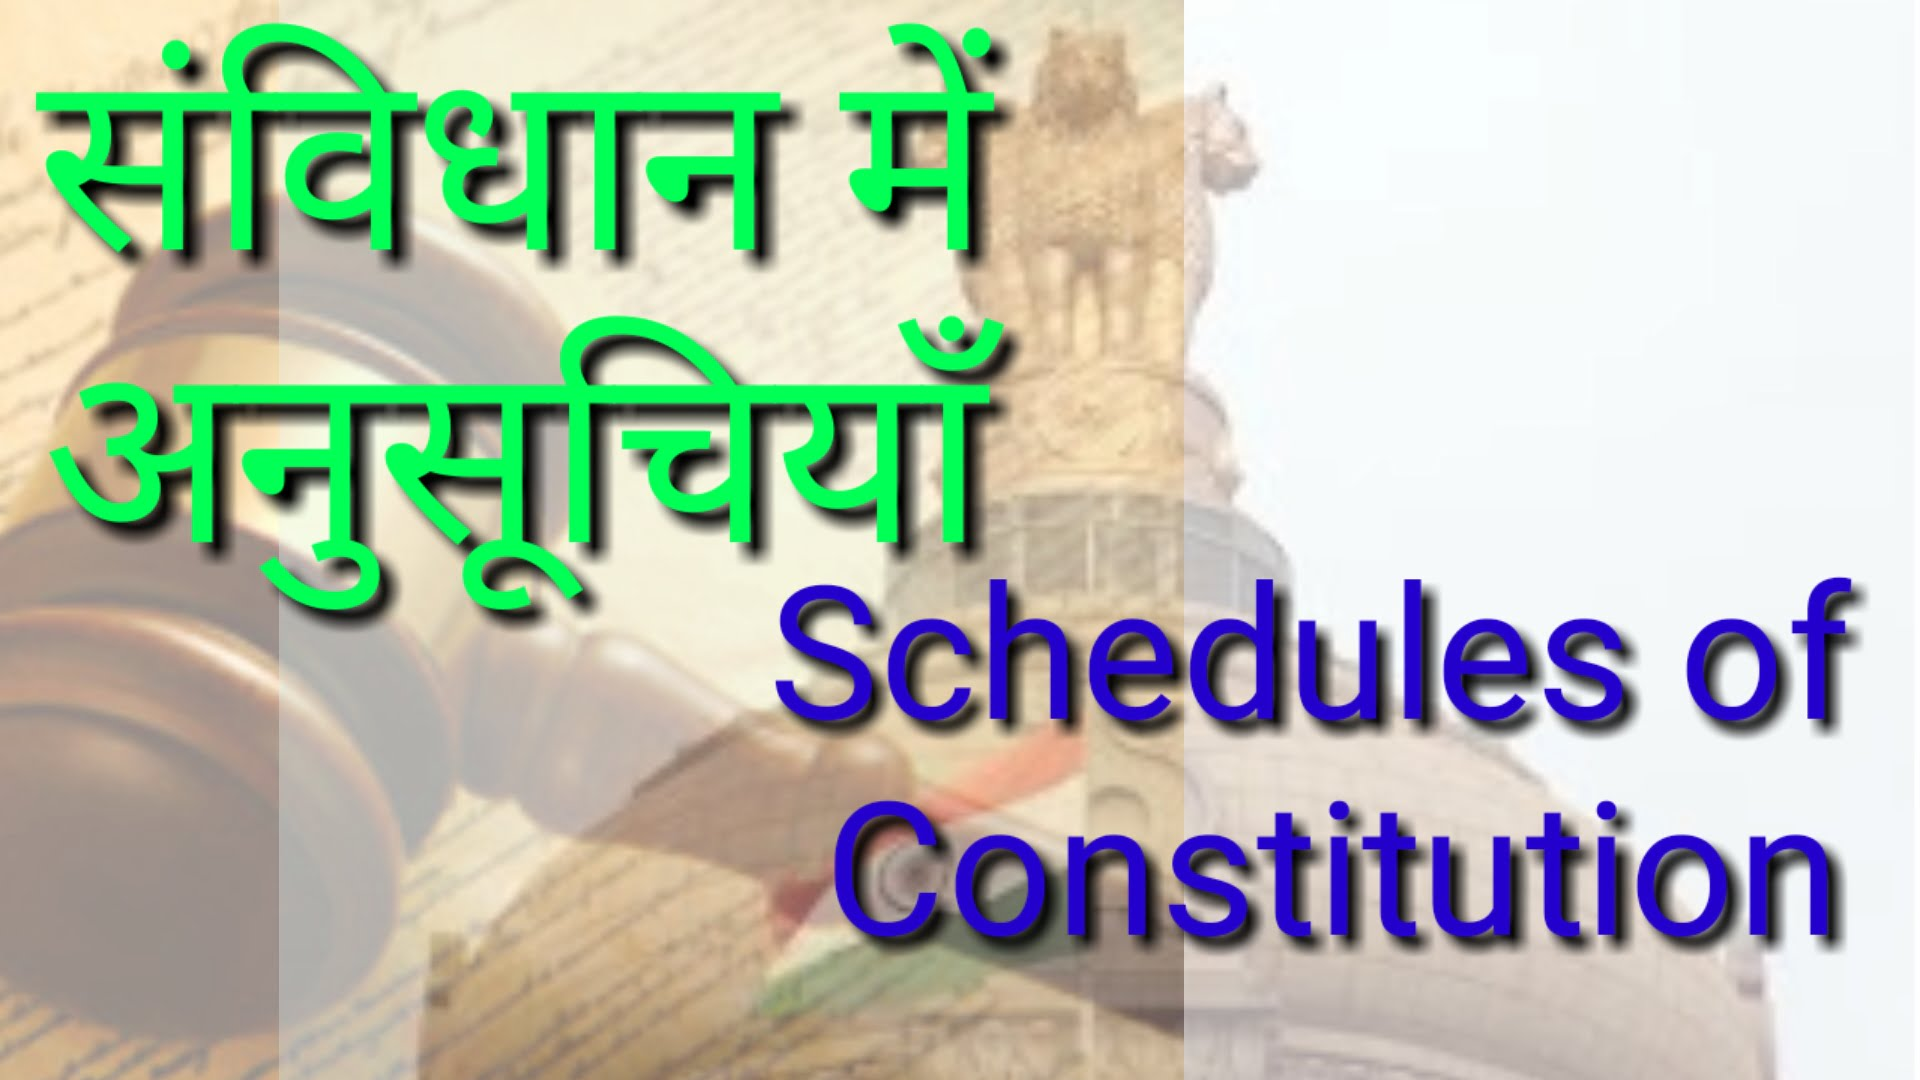 Schedules of Constitution